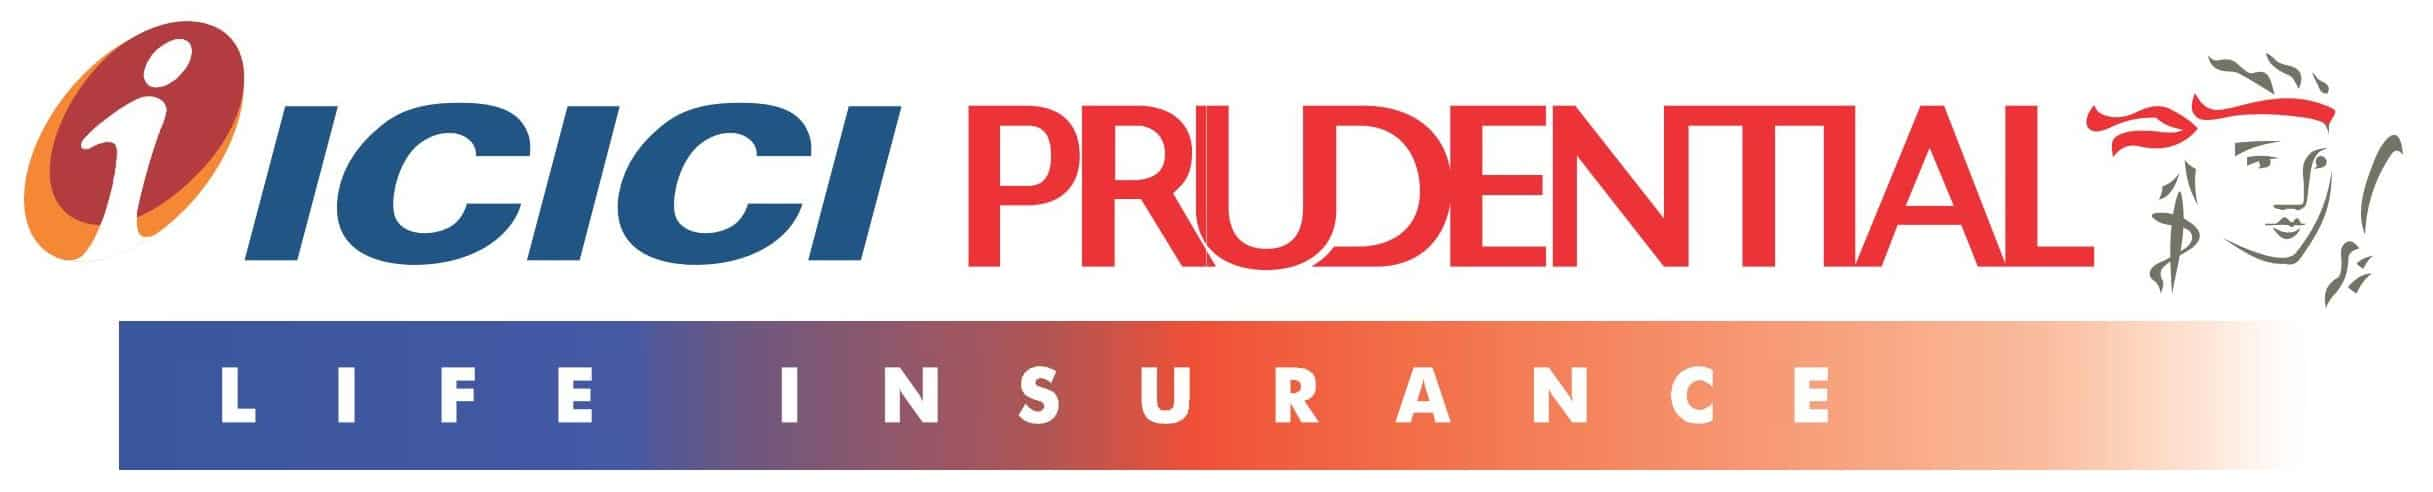 ICICI Prudential Life Insurance Logo